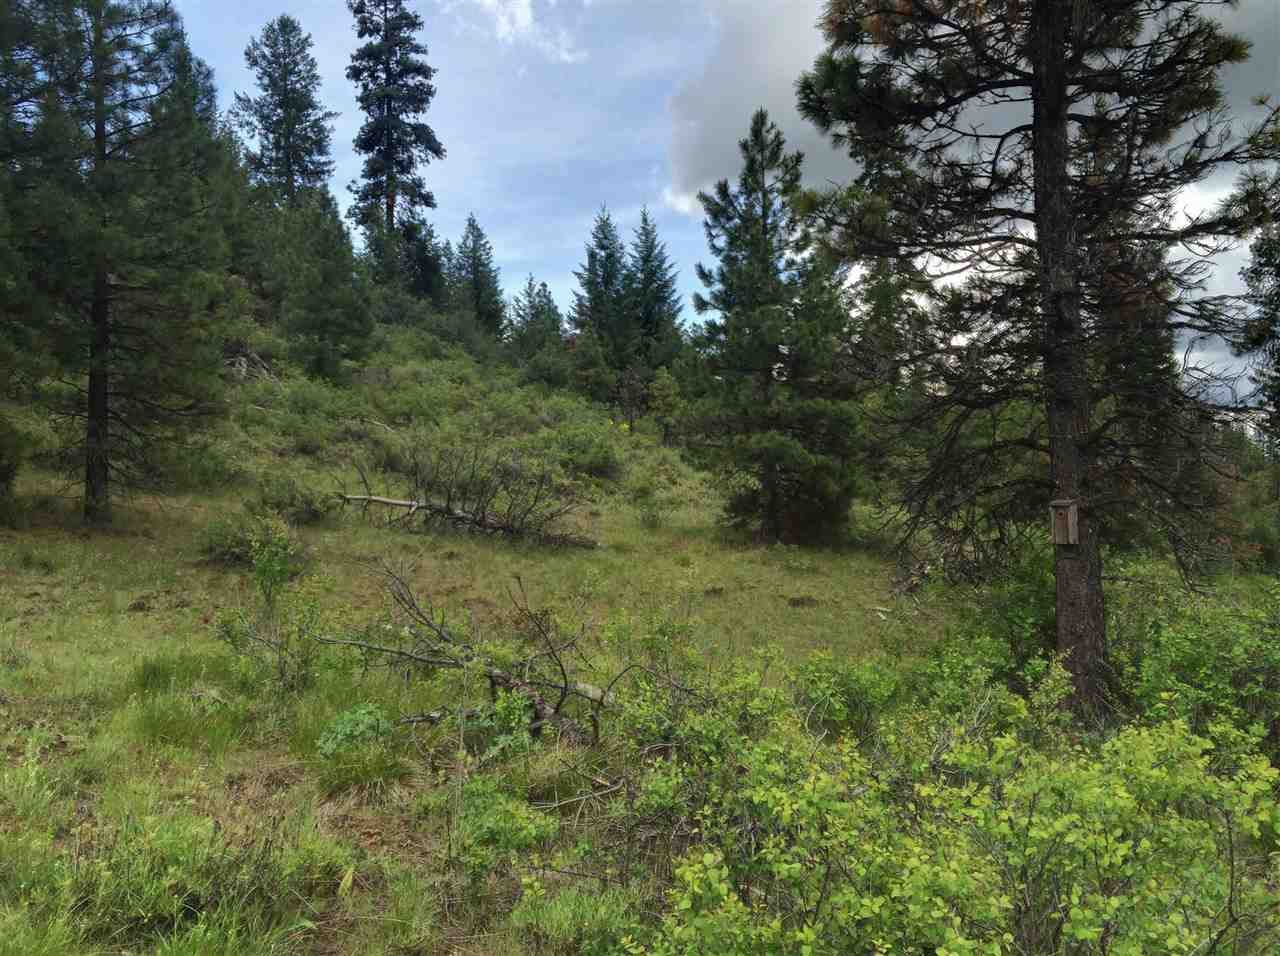 Lot 25 Forest Highlands, Boise, ID 83716